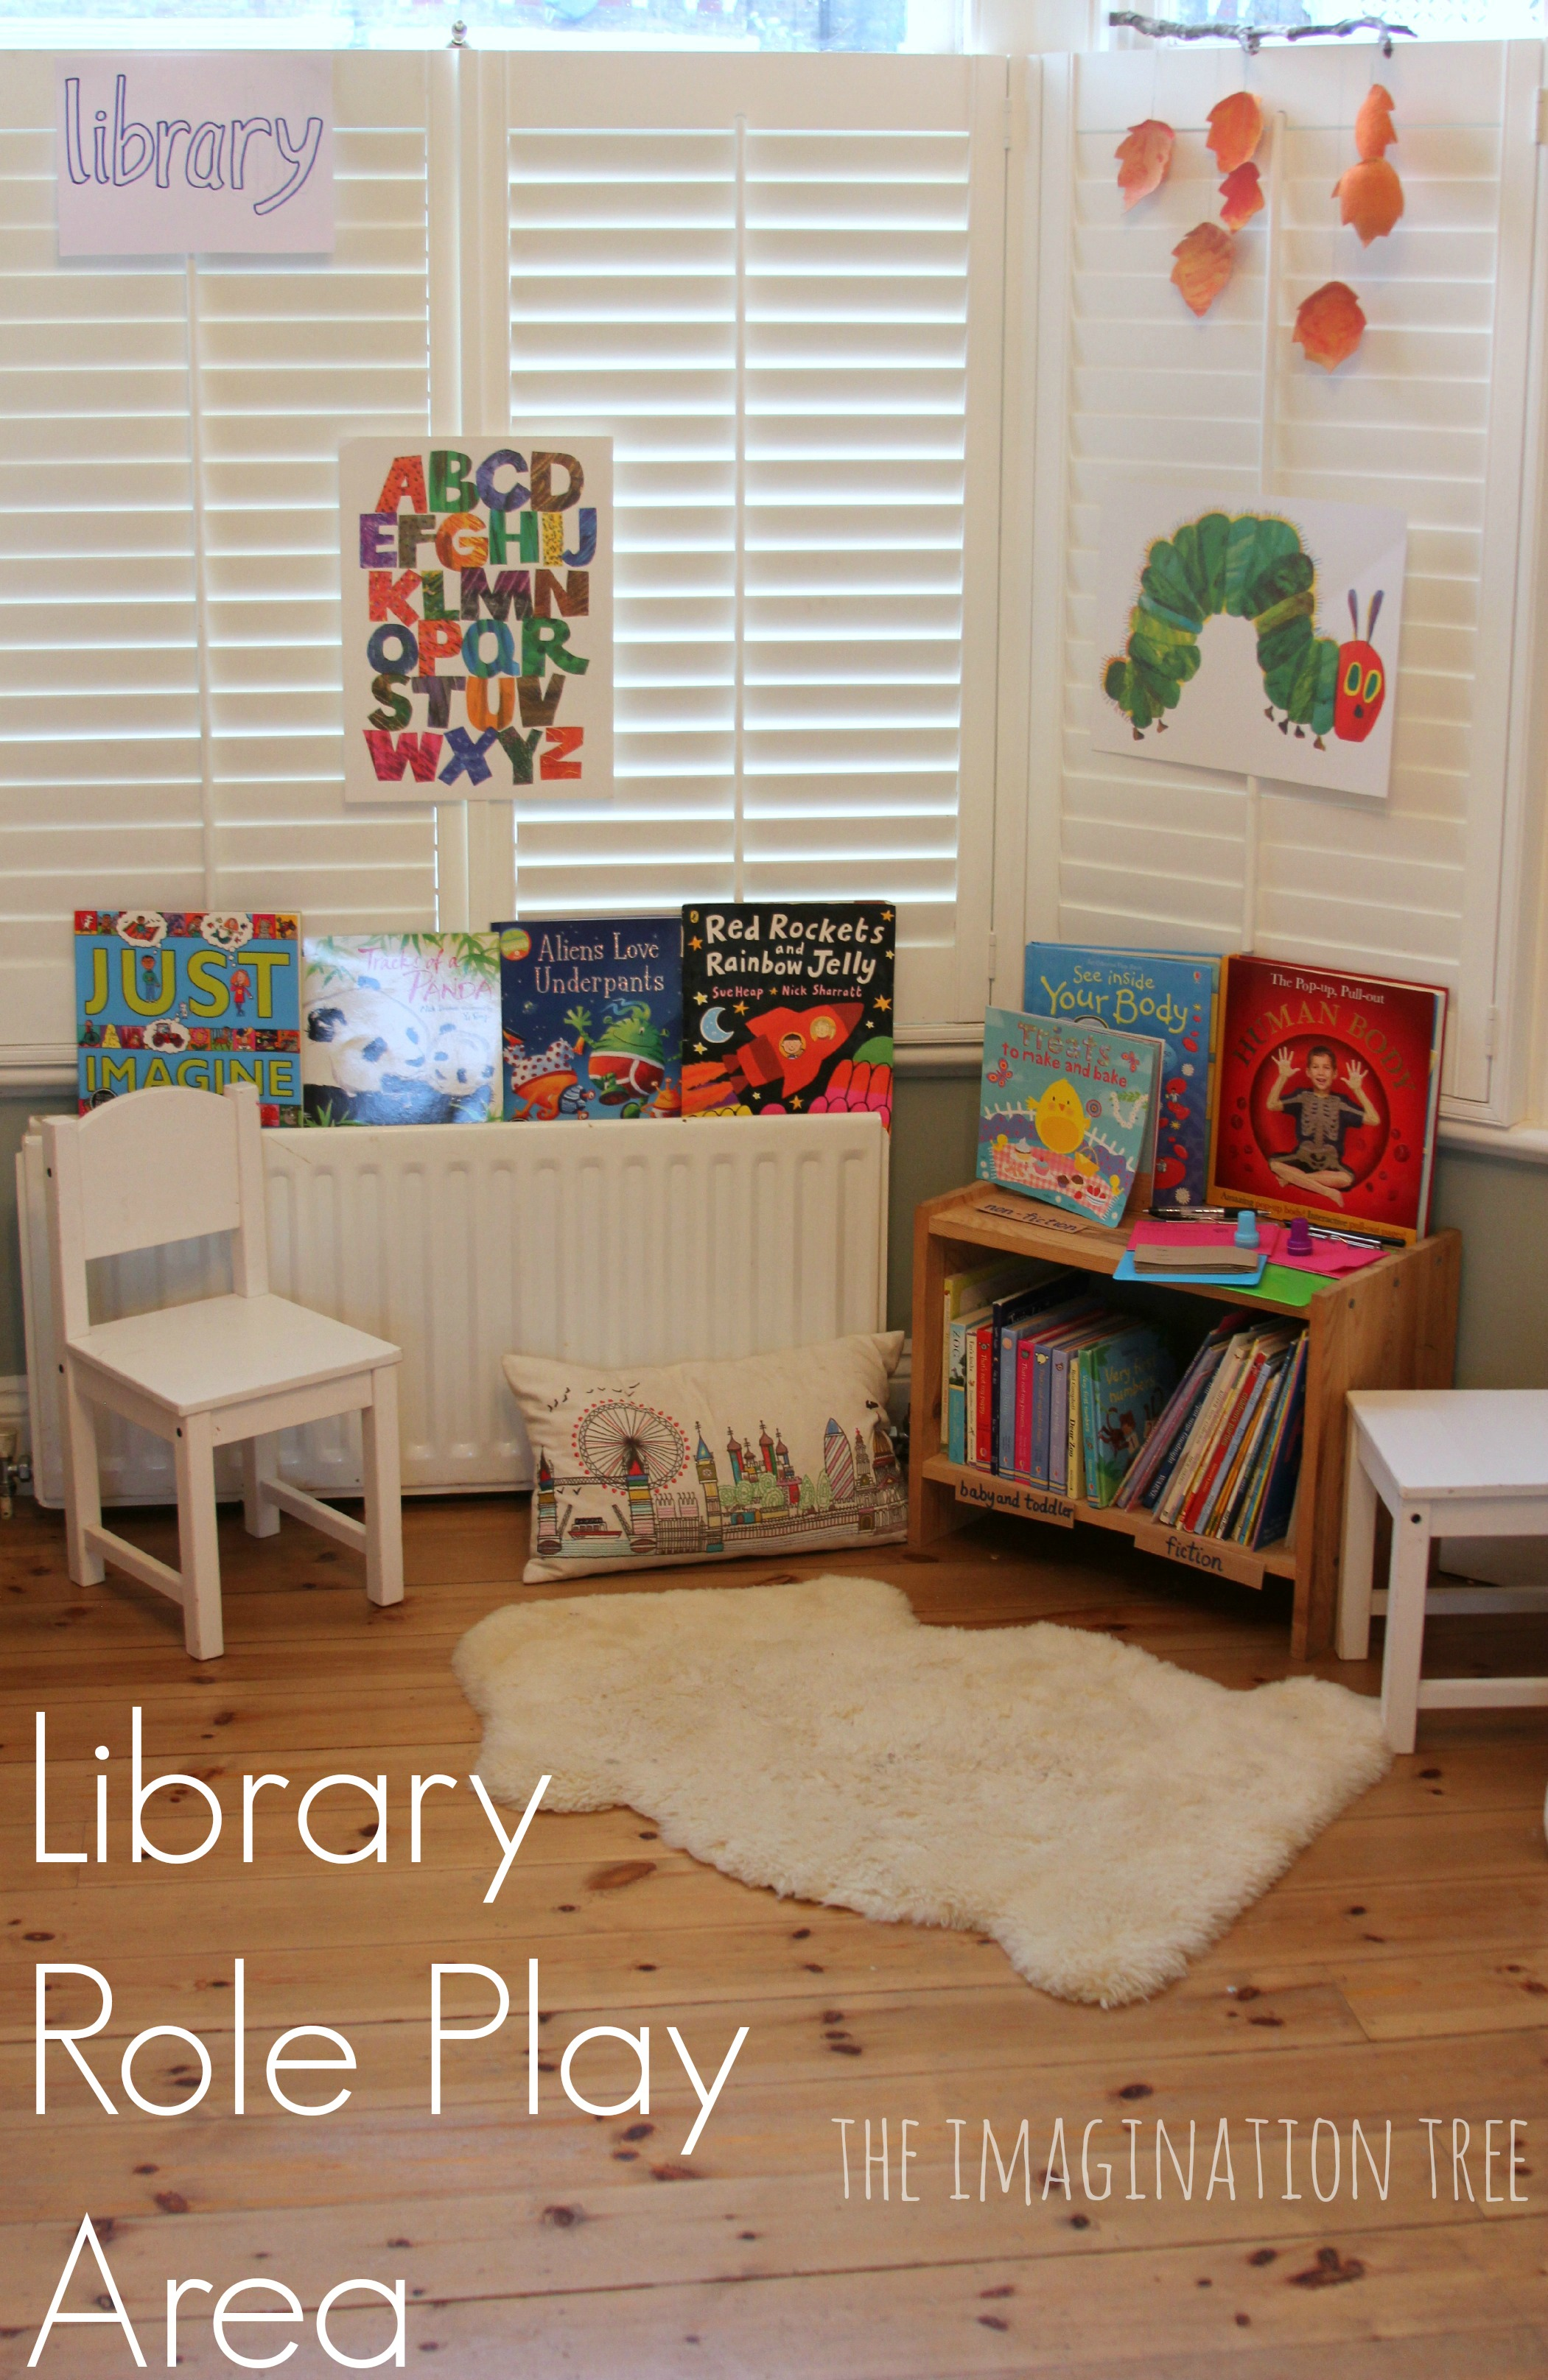 Library Role Play Area